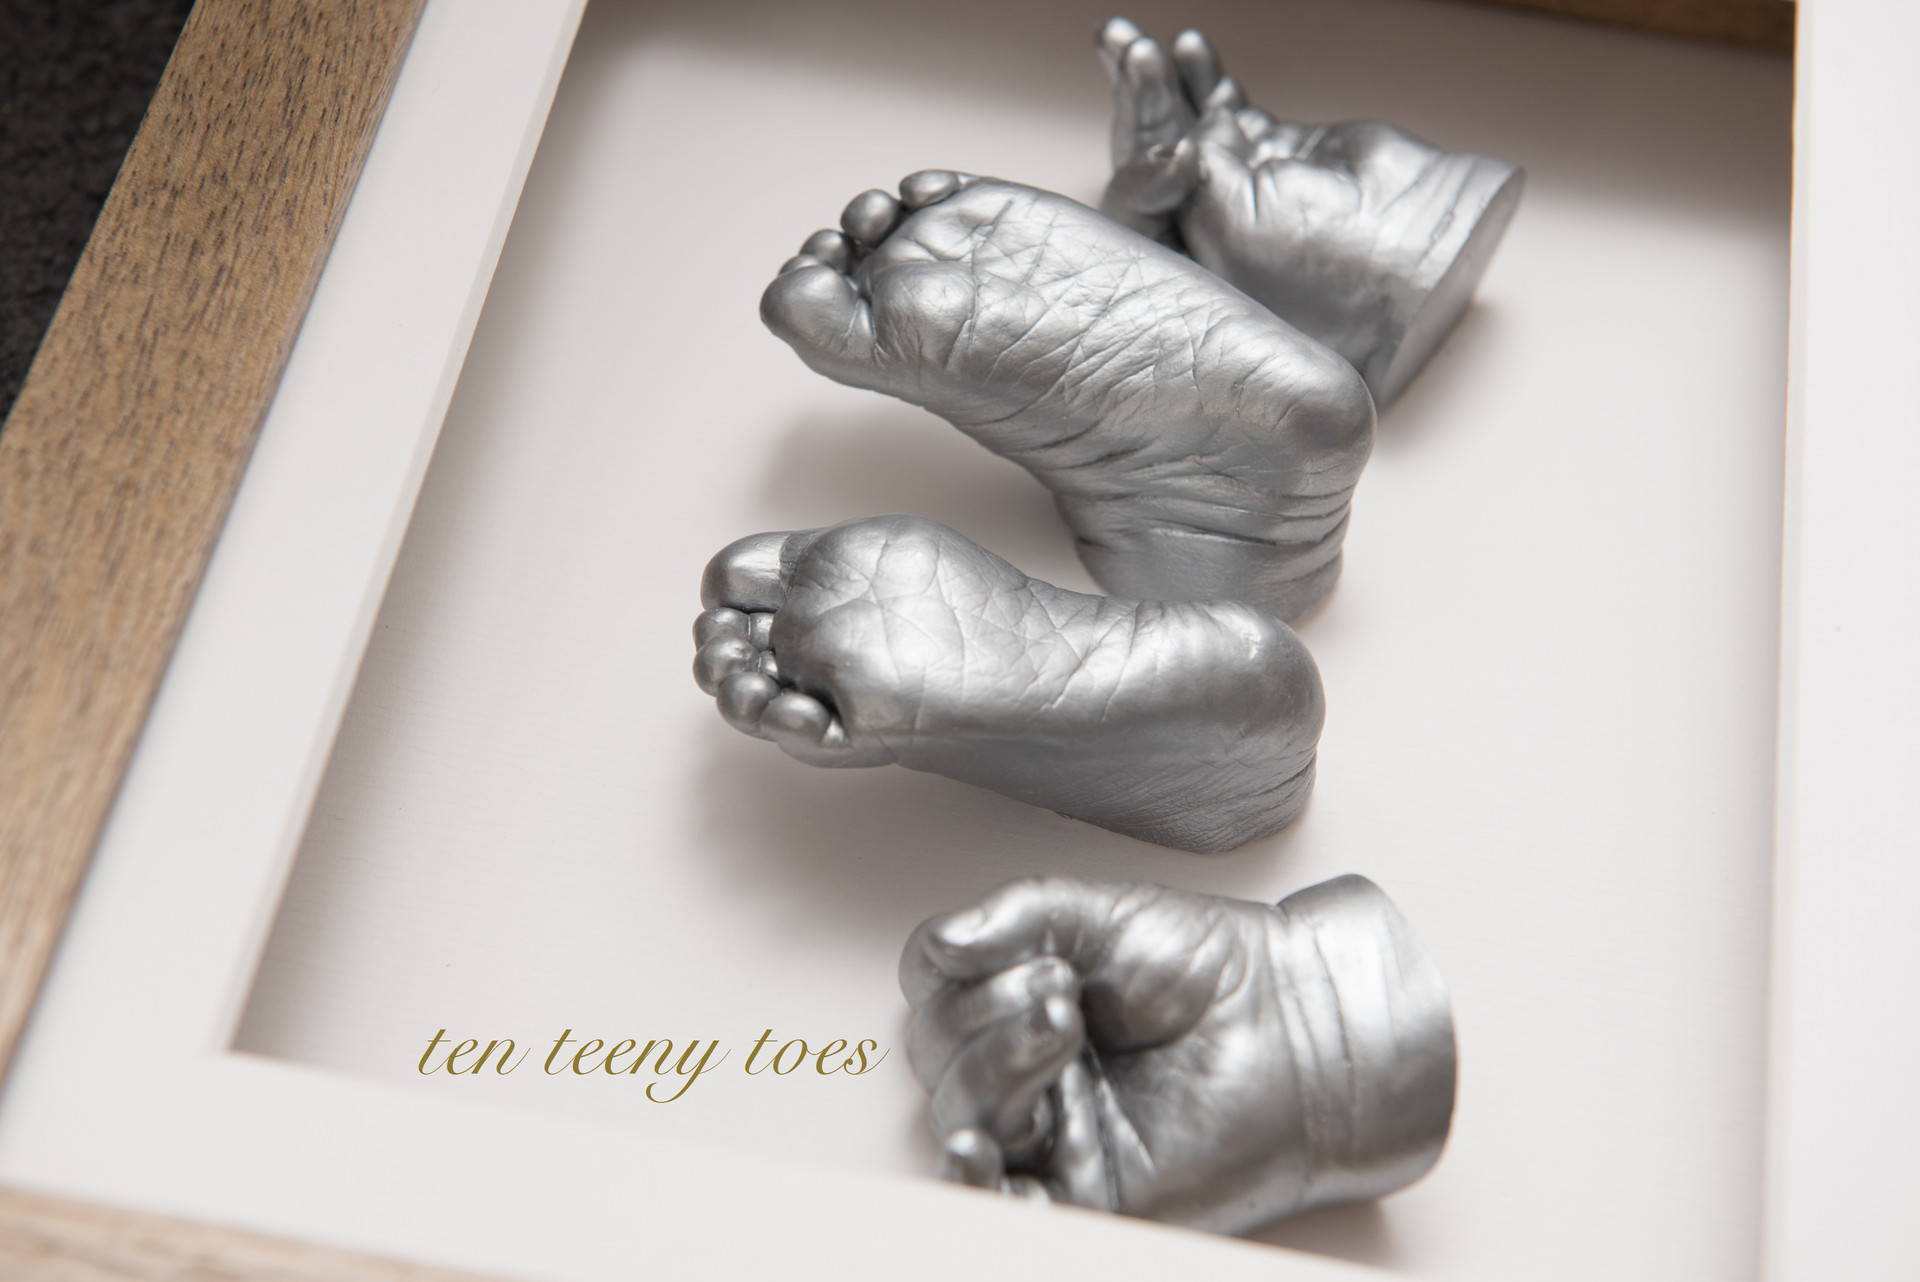 The detail on newborn hand and feet casts.